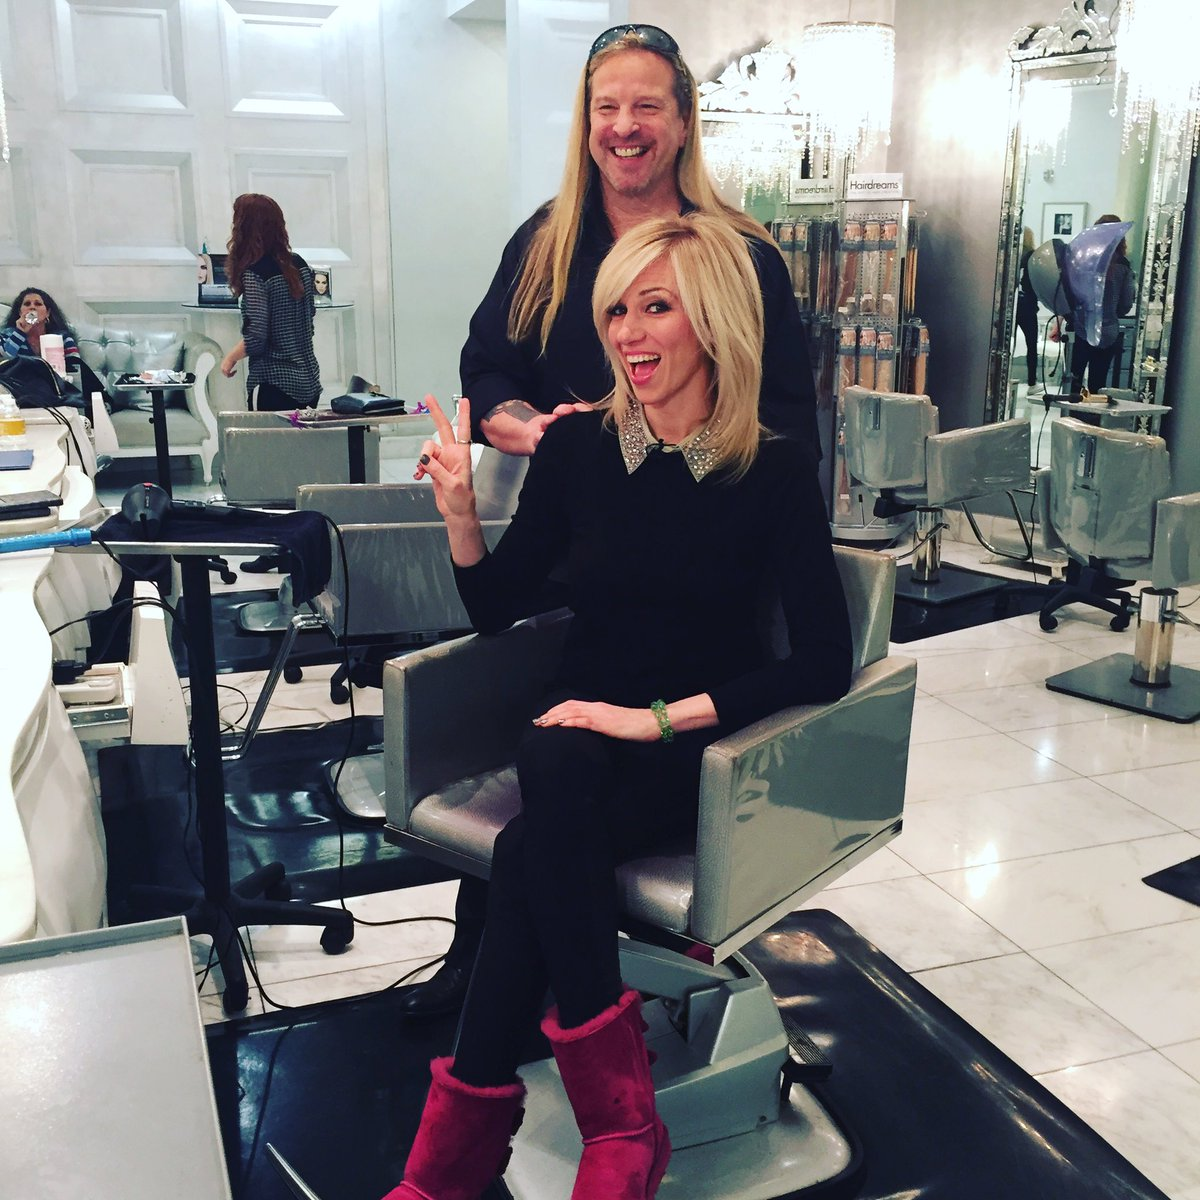 On set today at @ColorSalonLV @CaesarsPalace with @extratv and @DebbieGibson! #BTS https://t.co/kyxfLcYDKe